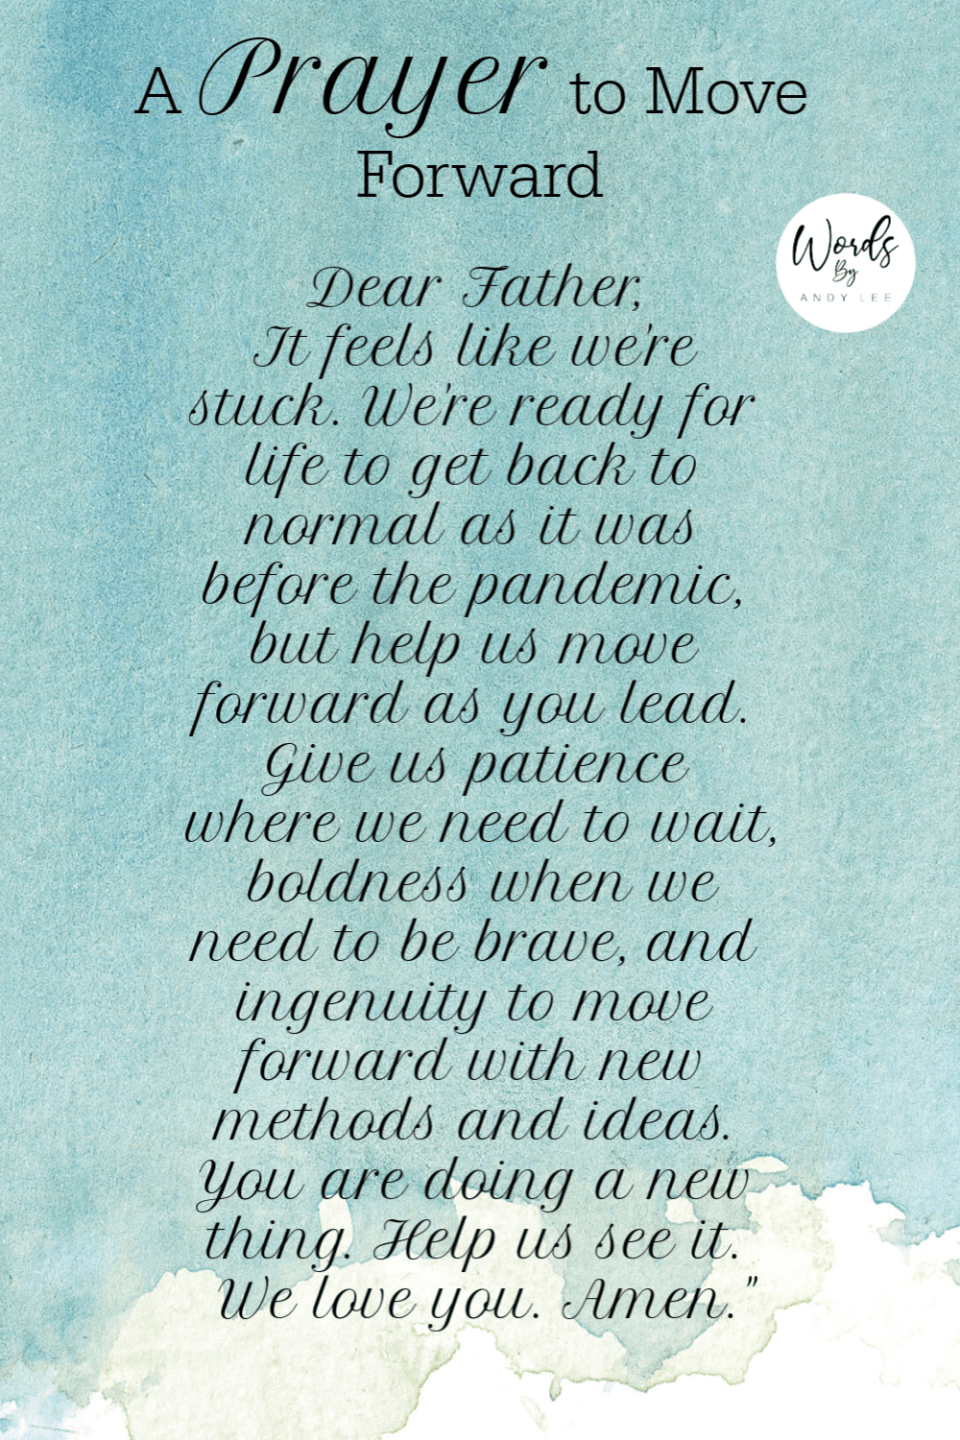 Prayer to move forward